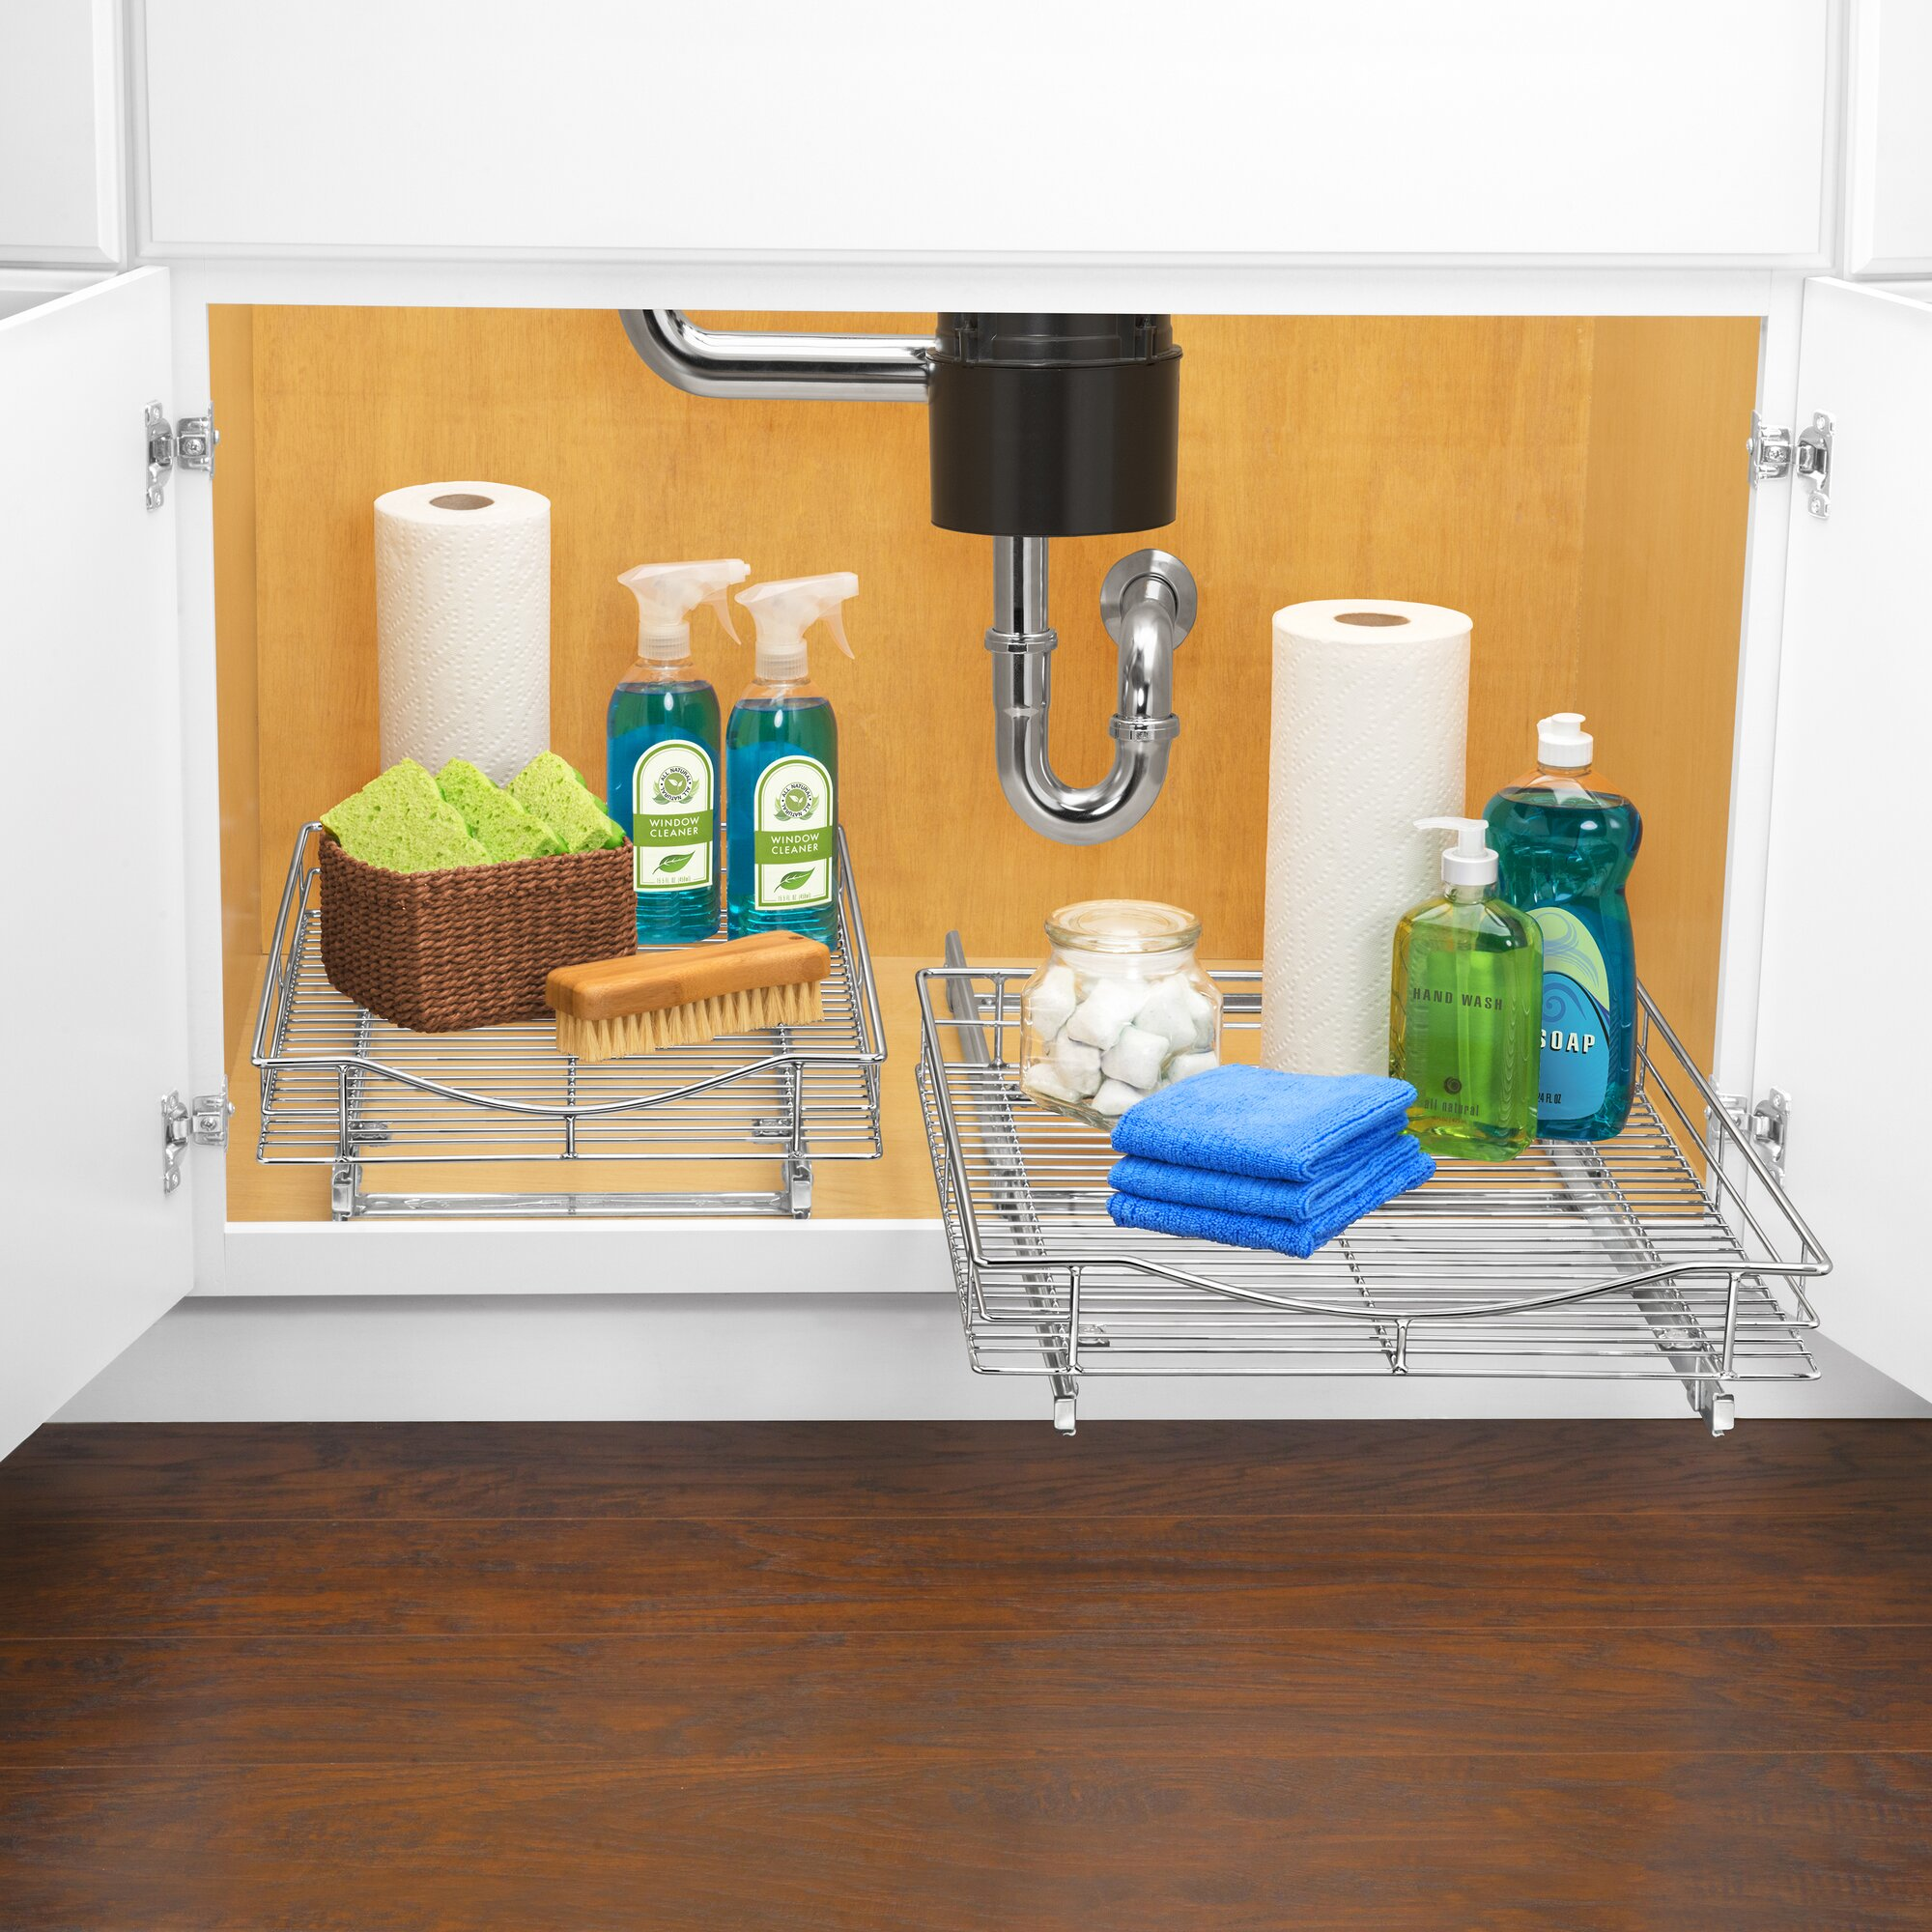 Under cabinet plate rack plans free - Lynk Professional Roll Out Cabinet Organizer Pull Out Under Cabinet Sliding Shelf